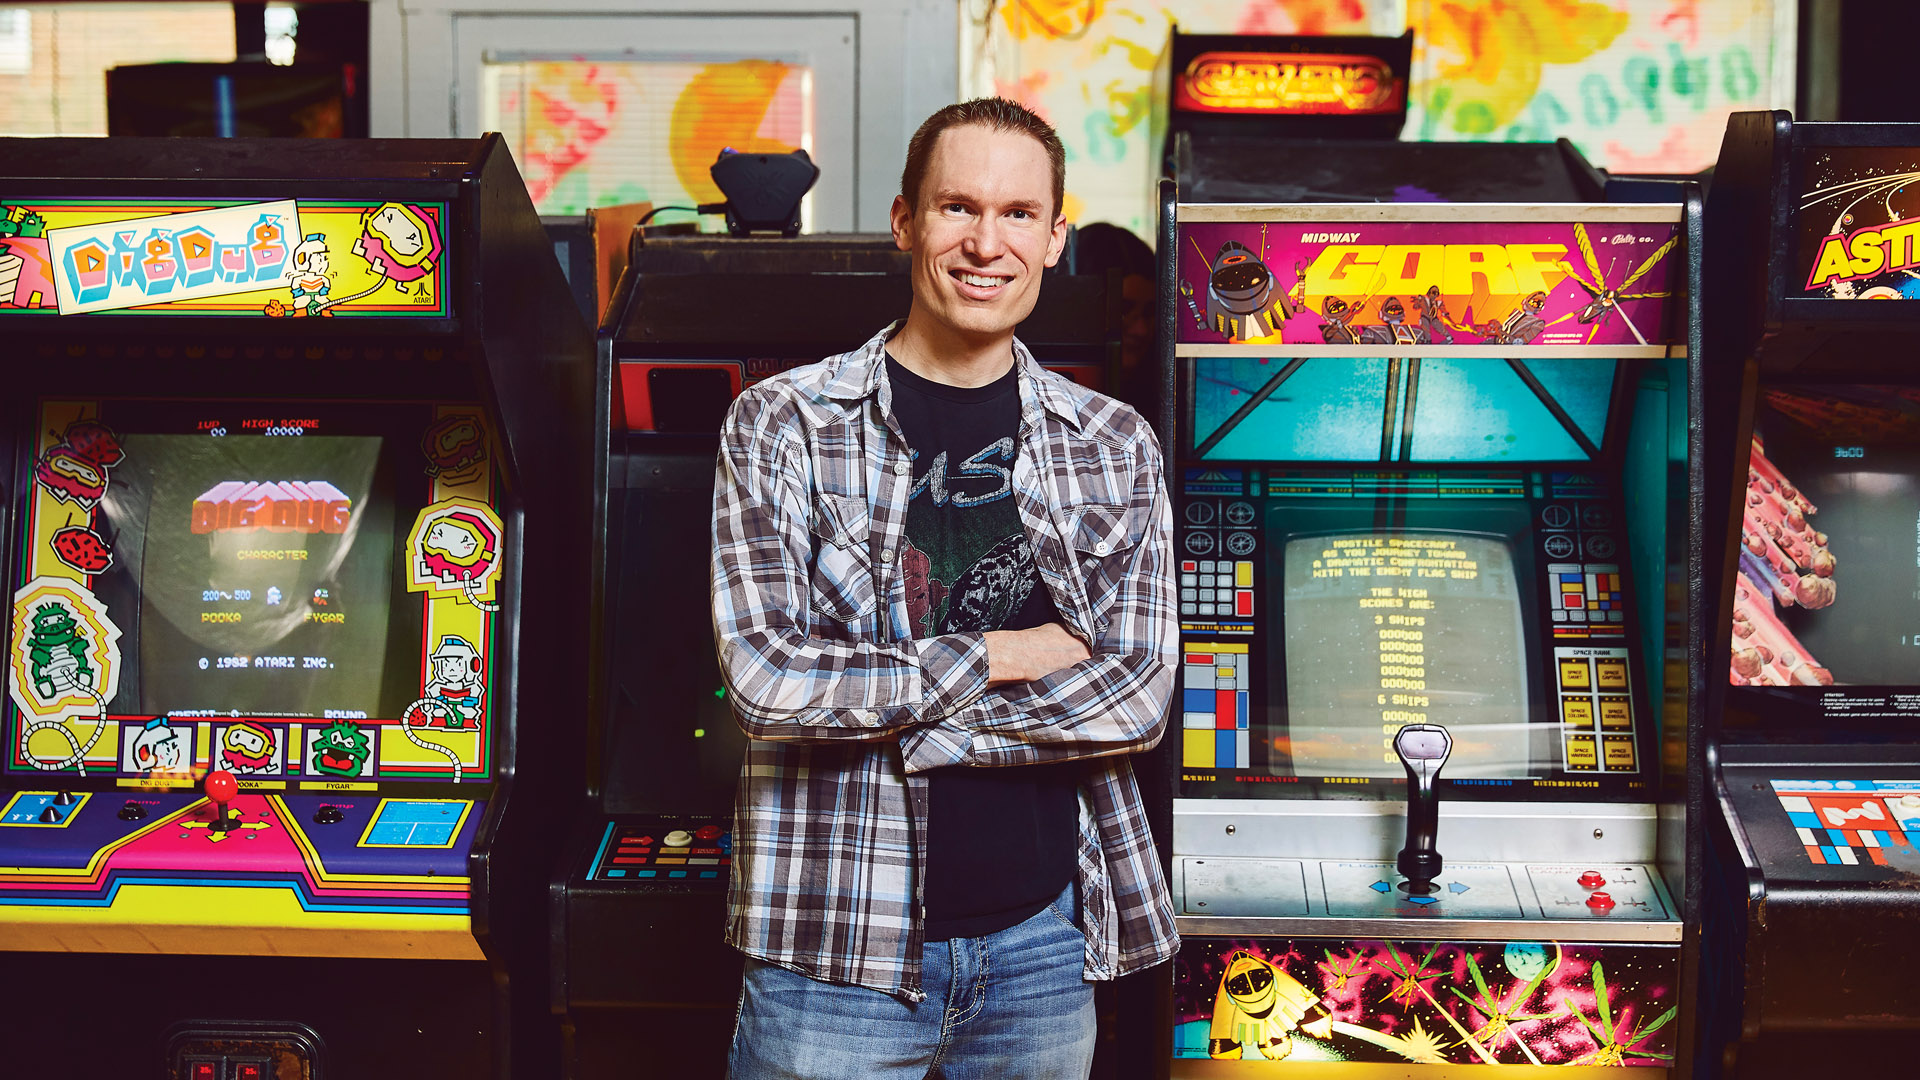 Steven McIver Jr. stands in a 1984 arcade in downtown Springfield, Missouri.